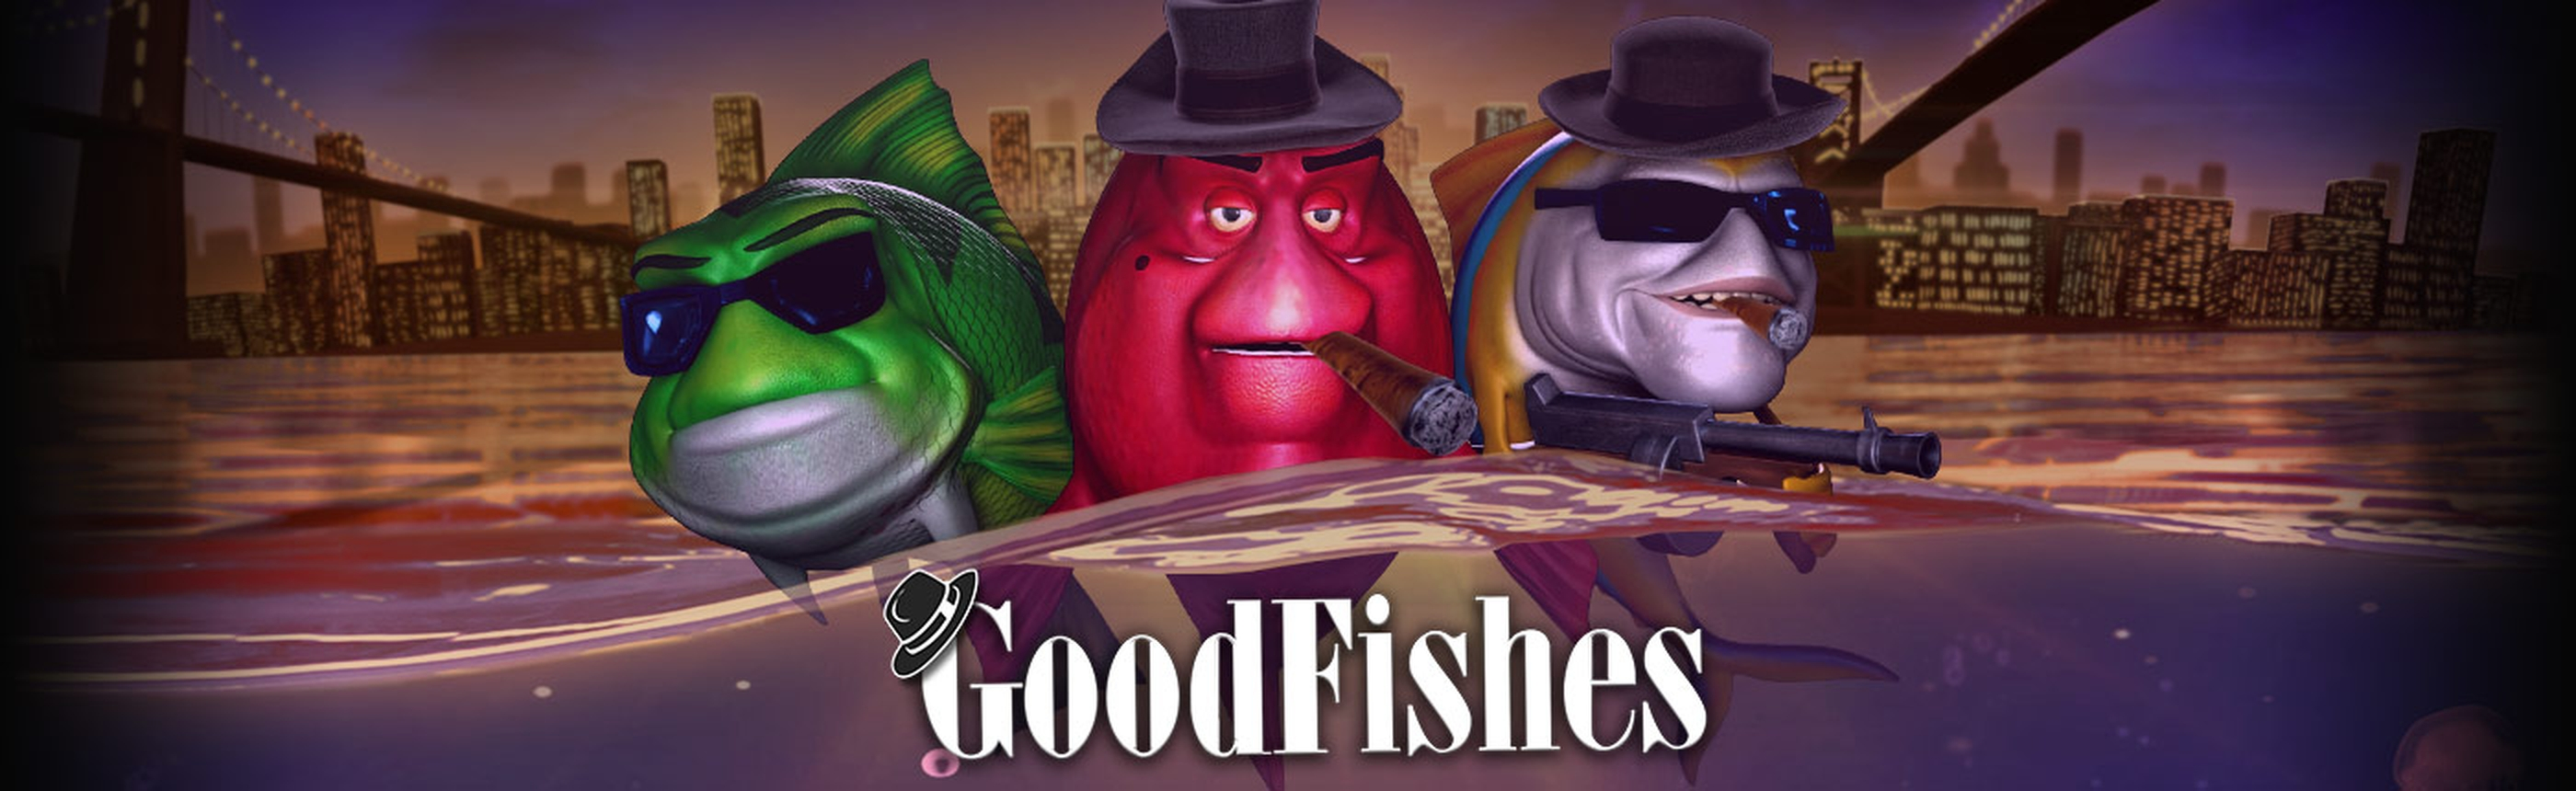 The GoodFishes Online Slot Demo Game by Revolver Gaming